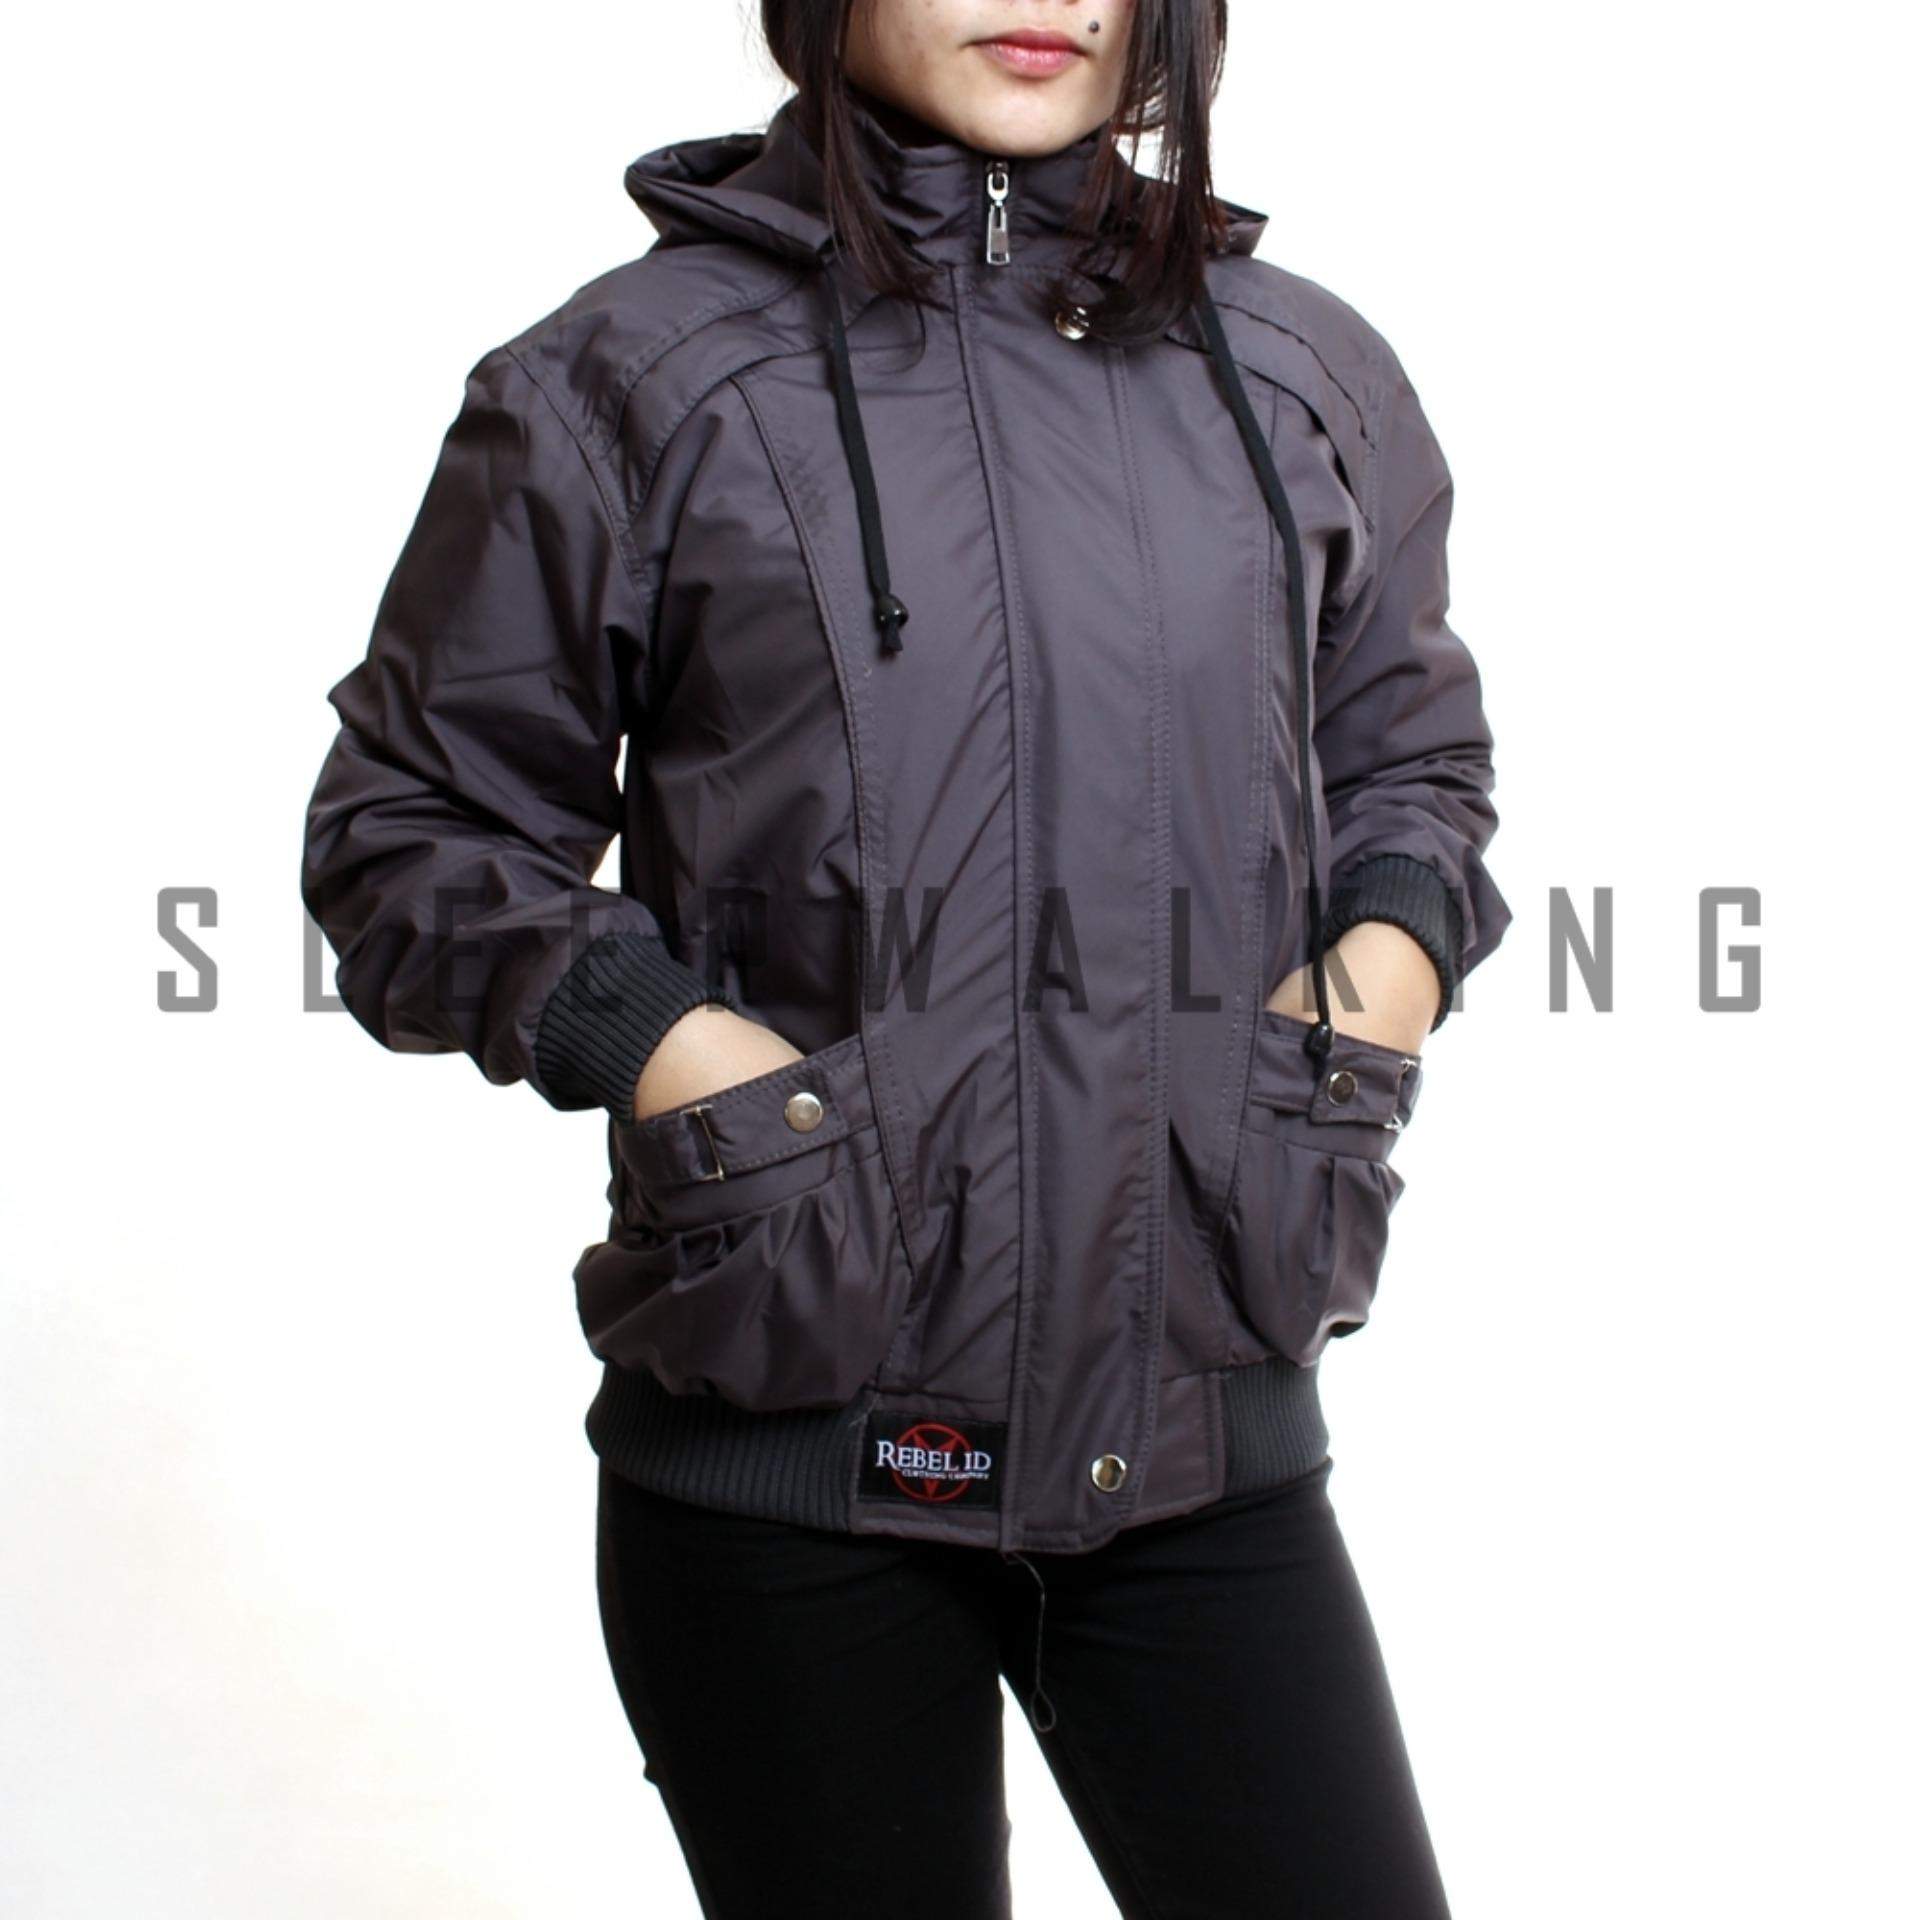 SW JAKET CASUAL WANITA PARASUT WATERPROOF BEST SELLER faf74241d0